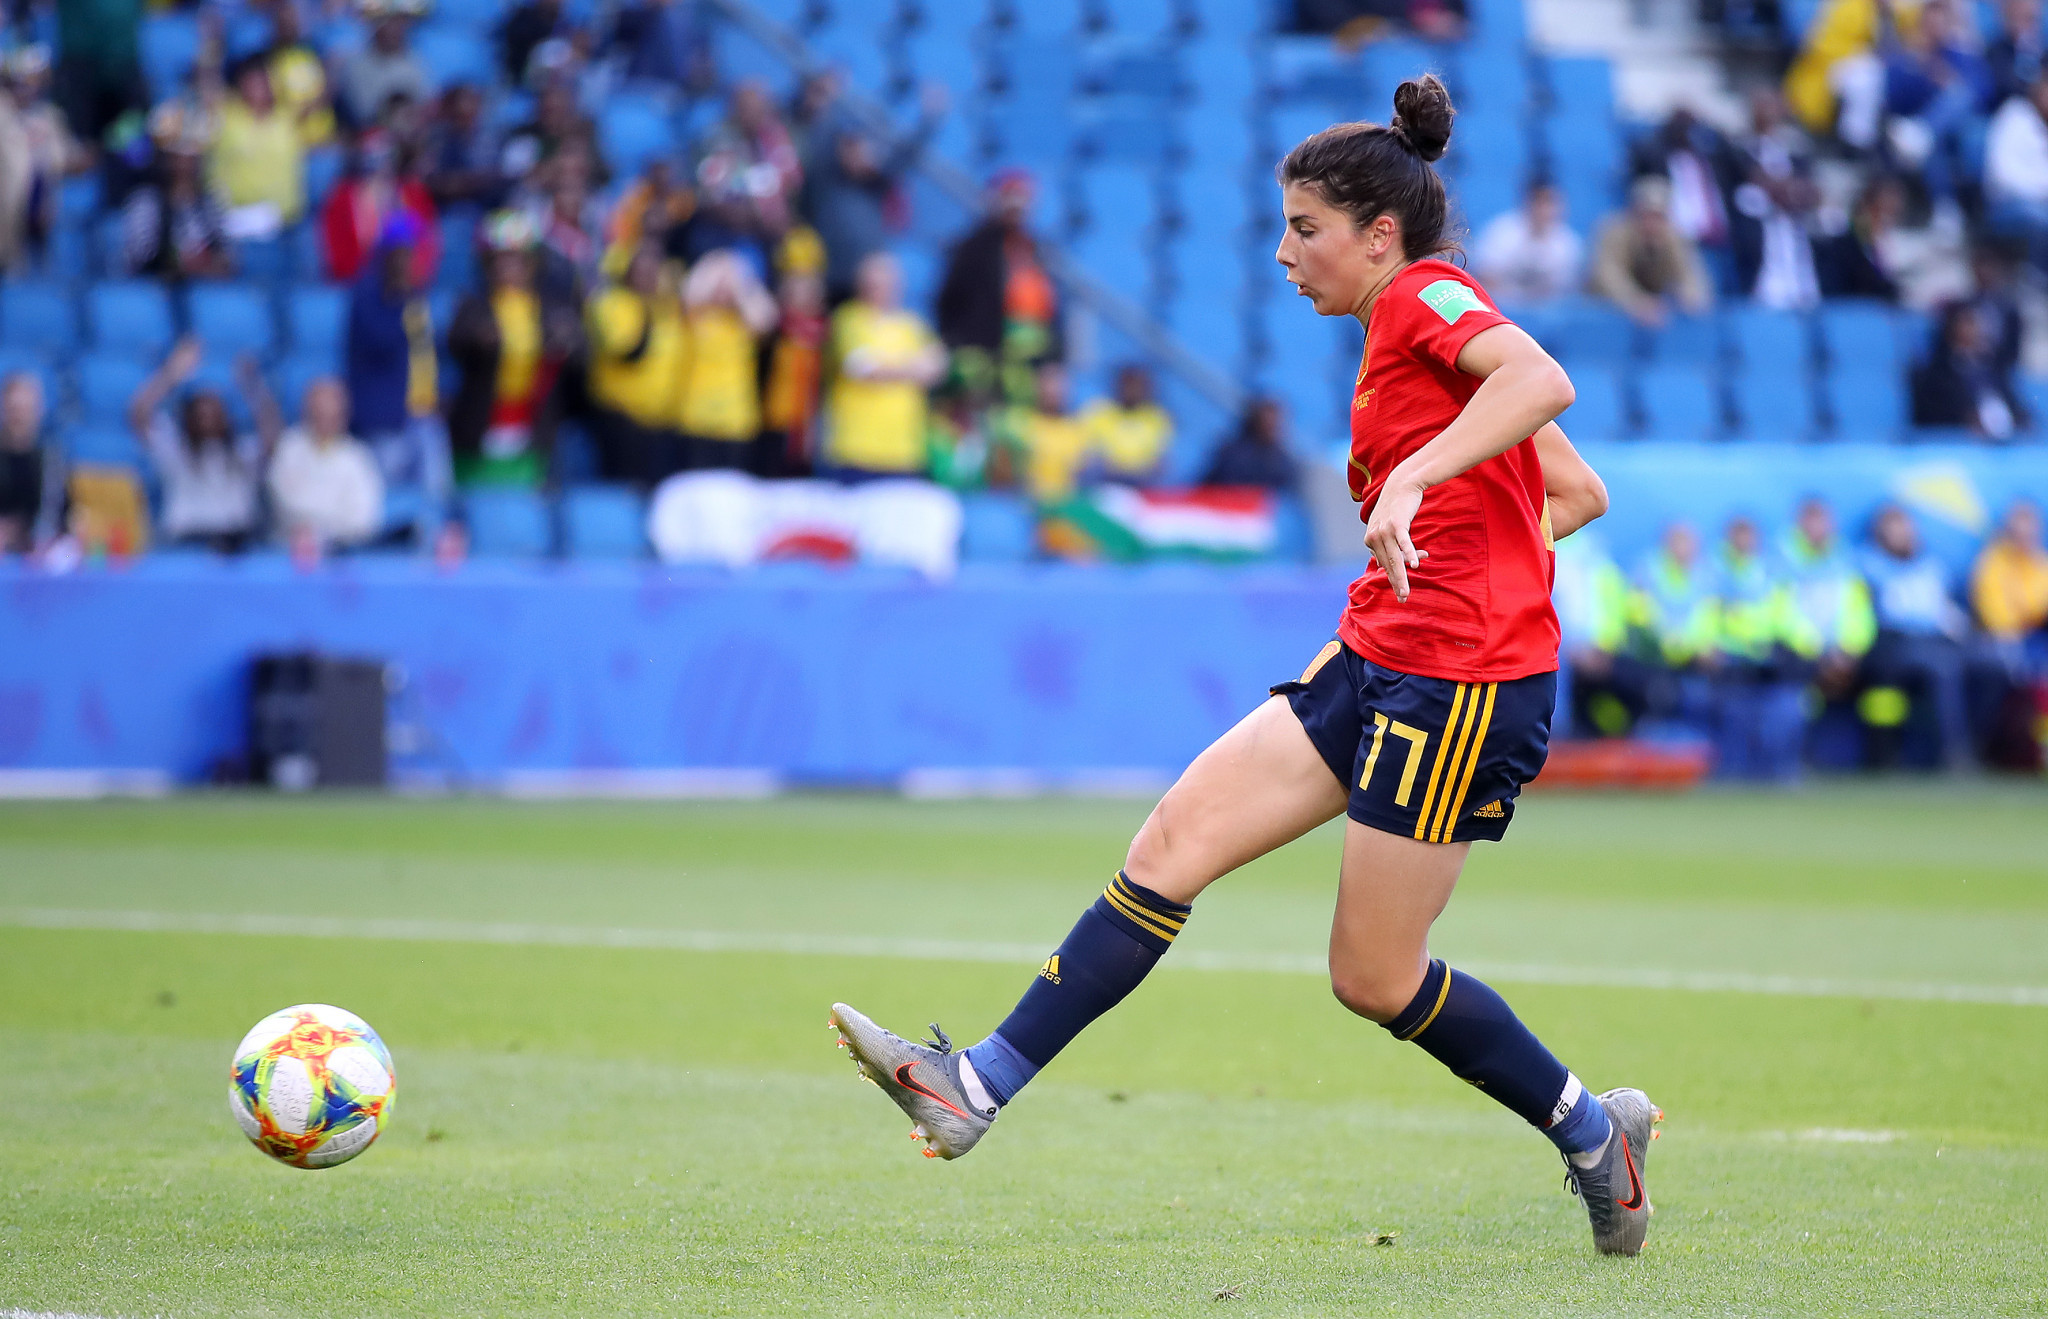 A late goal from Lucia Garcia gave Spain a 3-1 victory ©Getty Images